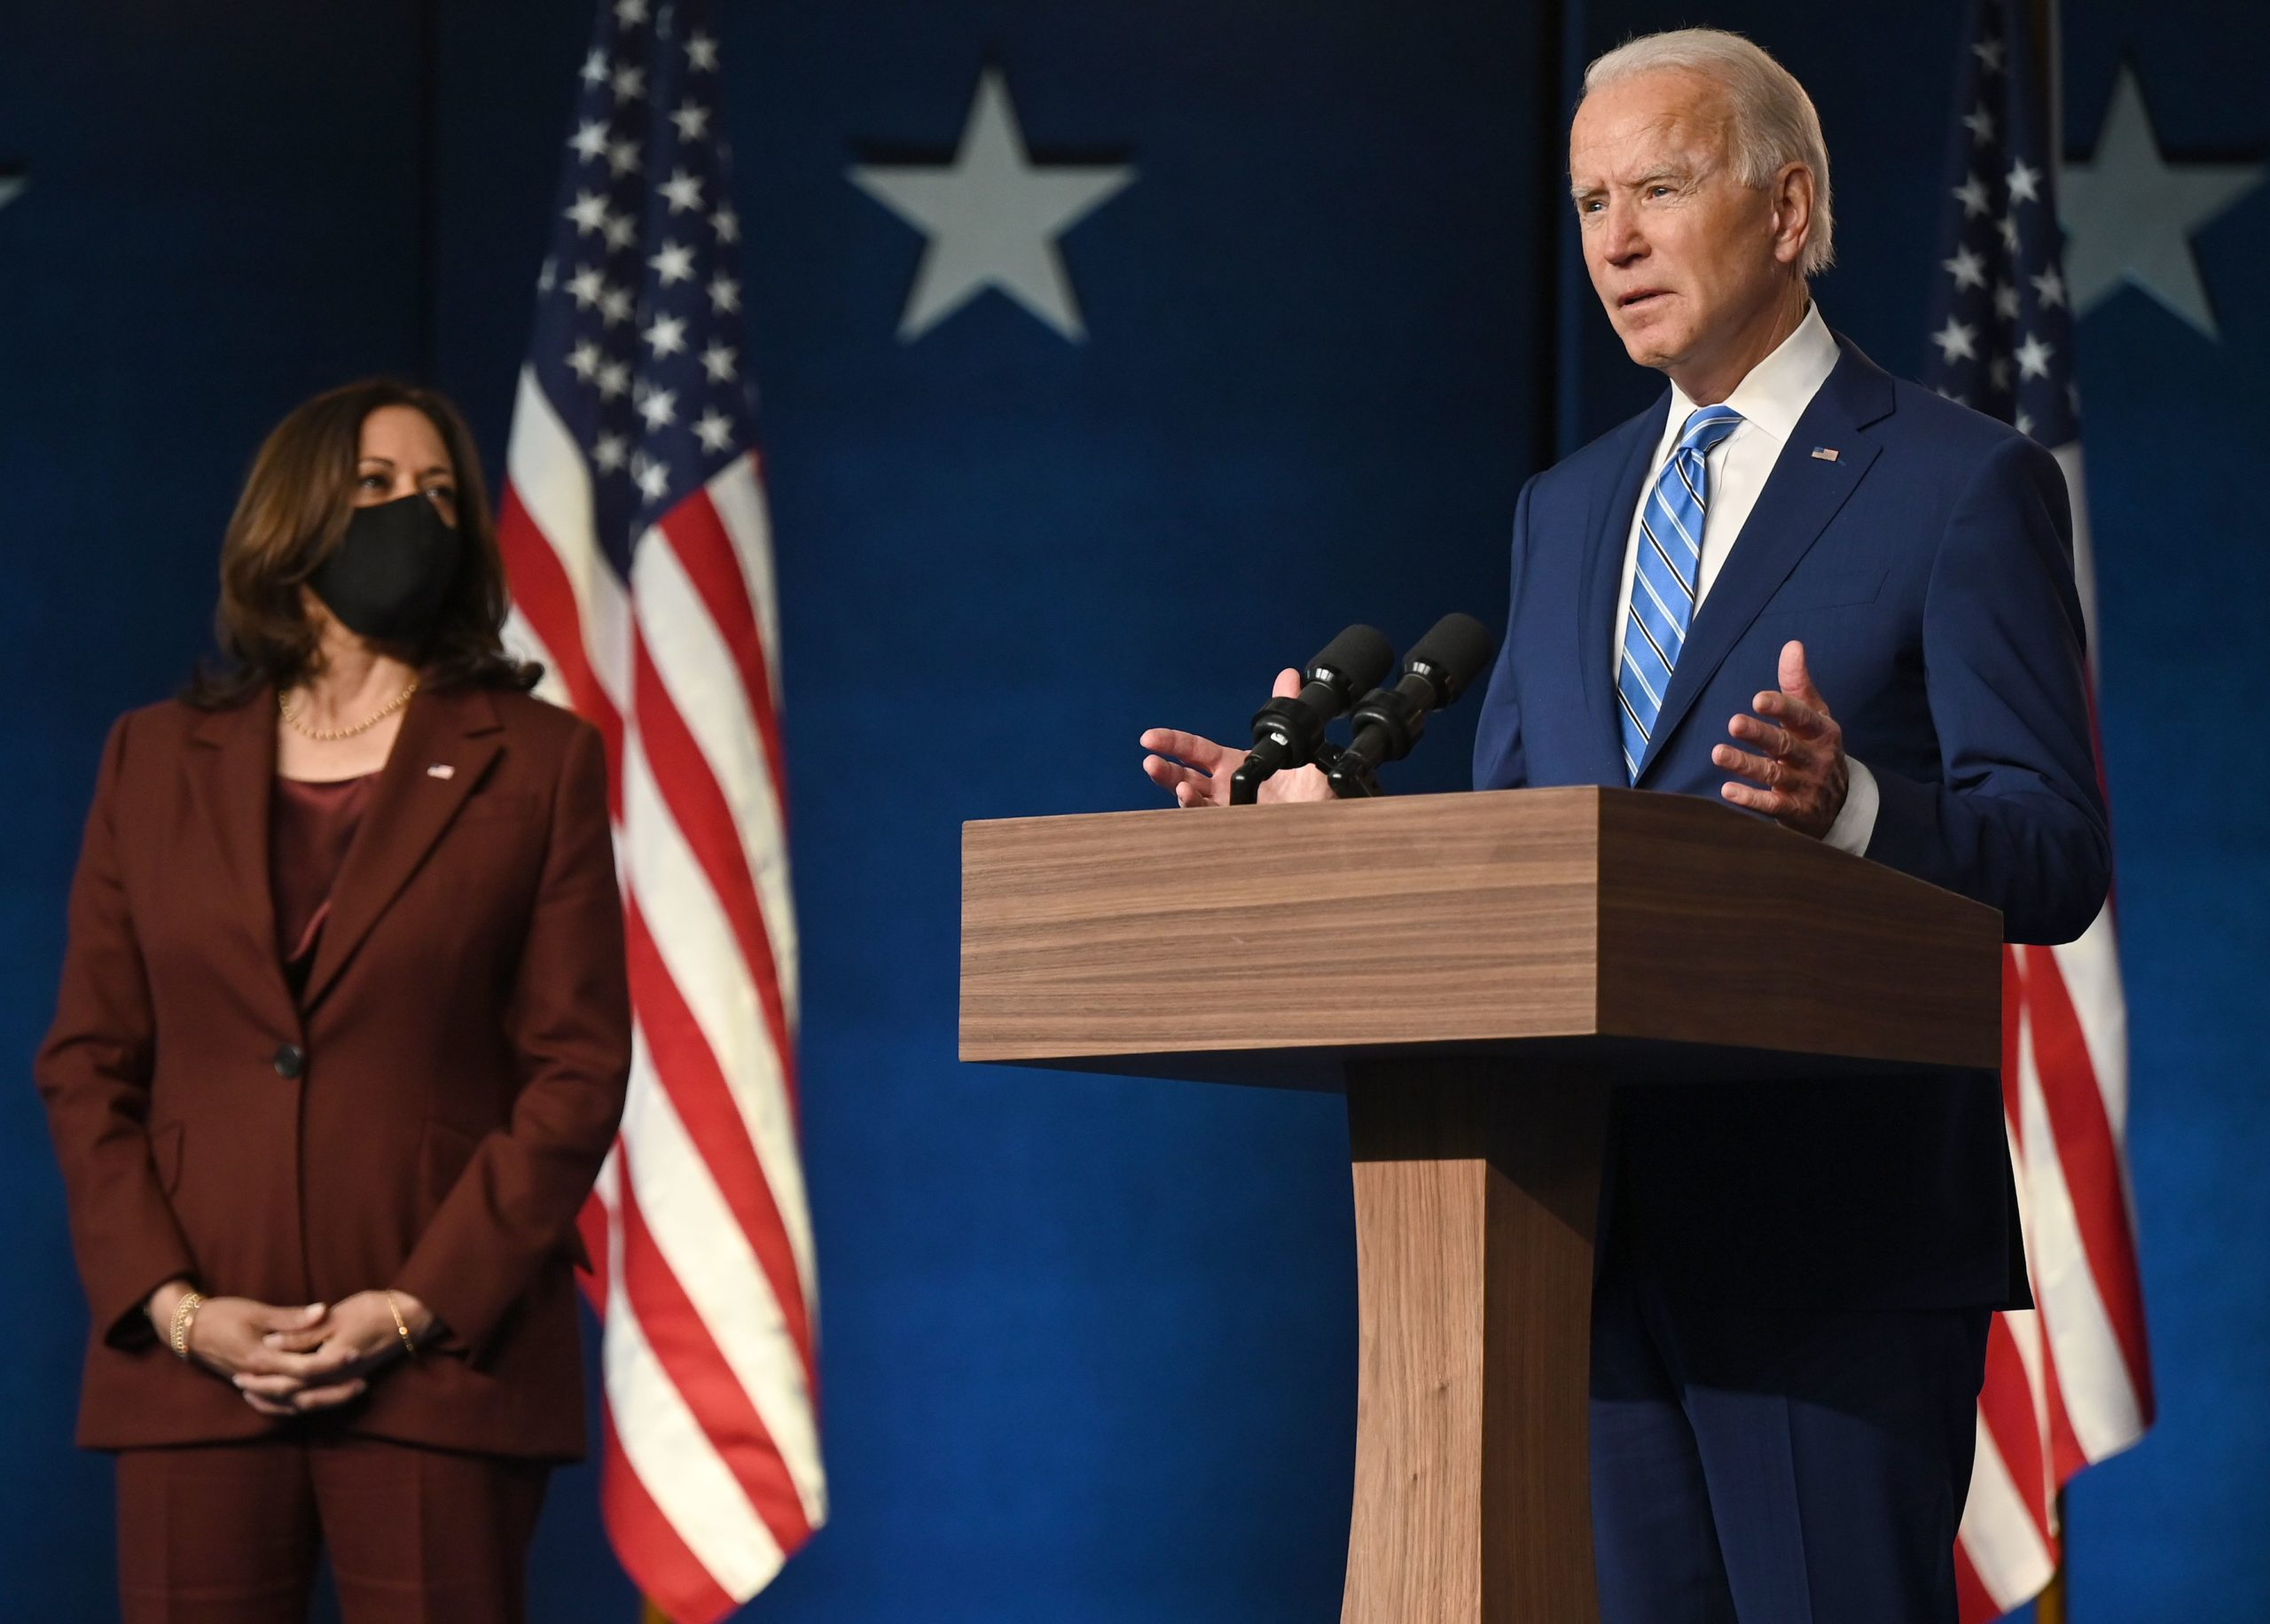 Democratic Presidential candidate Joe Biden speaks as US Senator and Vice-Presidential candidate, Kamala Harris, looks on at the Chase Center in Wilmington, Delaware on November 4, 2020. - President Donald Trump and Democratic challenger Joe Biden are squaring off for what could be a legal battle for the White House, running neck-and-neck in the electoral vote count, and several battleground states still in play on November 4. (Photo by JIM WATSON/AFP via Getty Images)